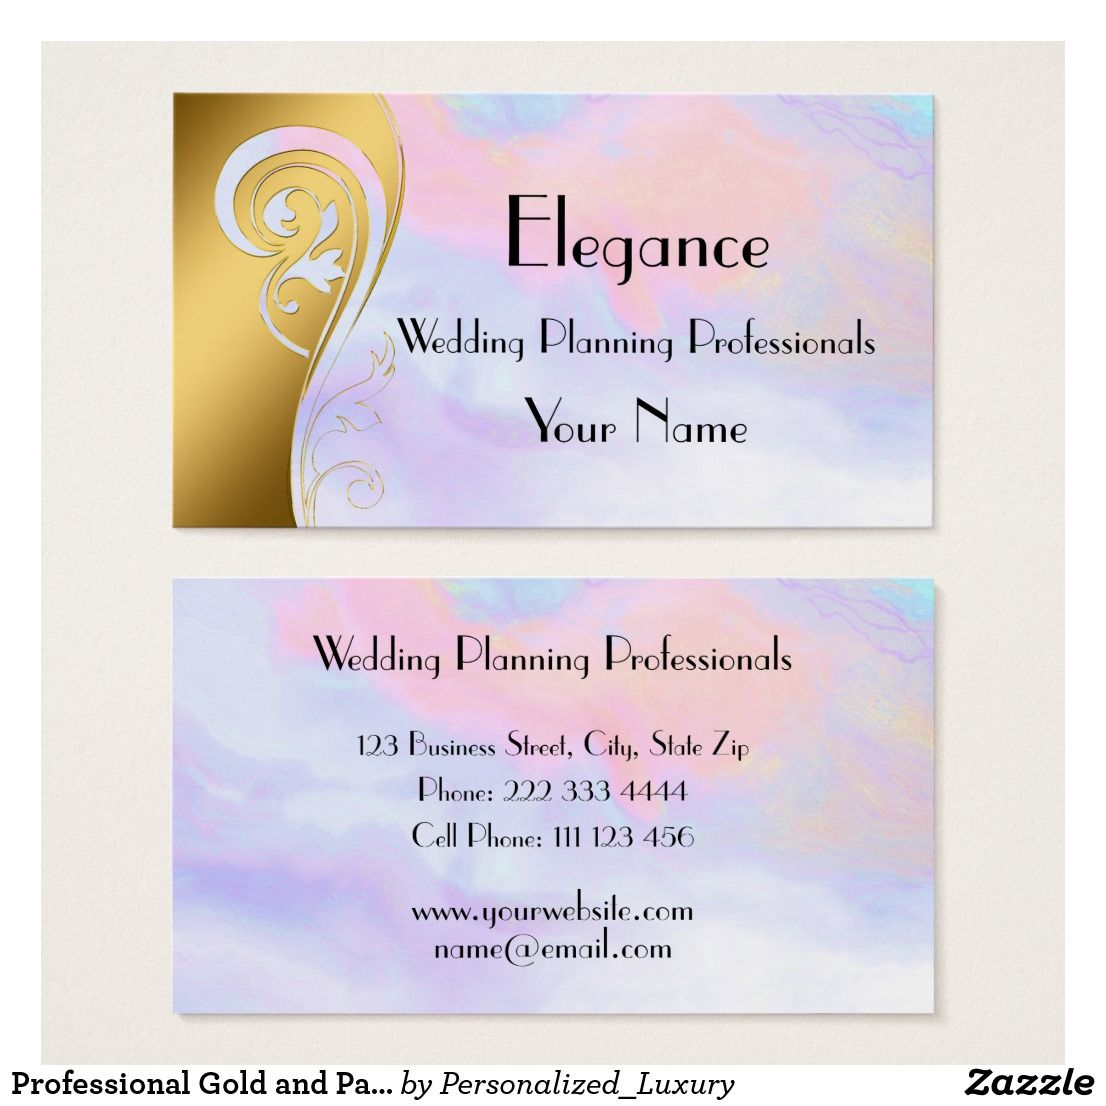 professional gold and pastel wedding planner business card